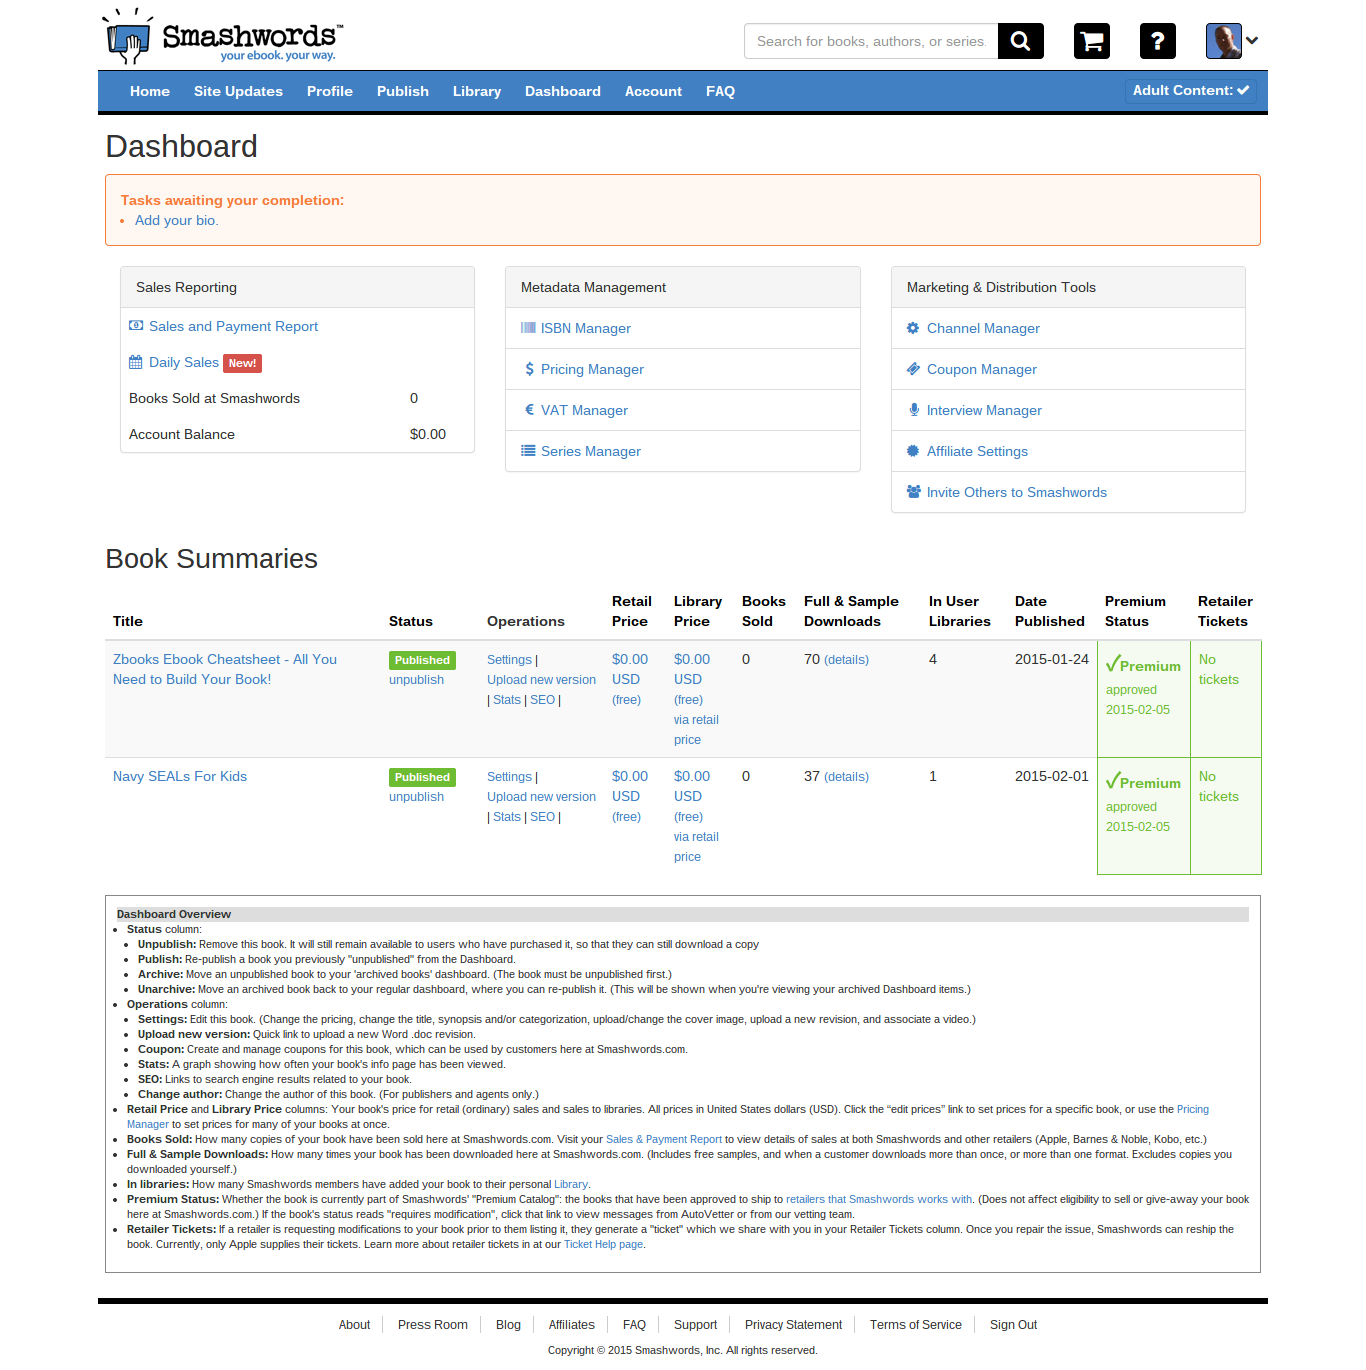 screencapture-www-smashwords-com-dashboard (4).png